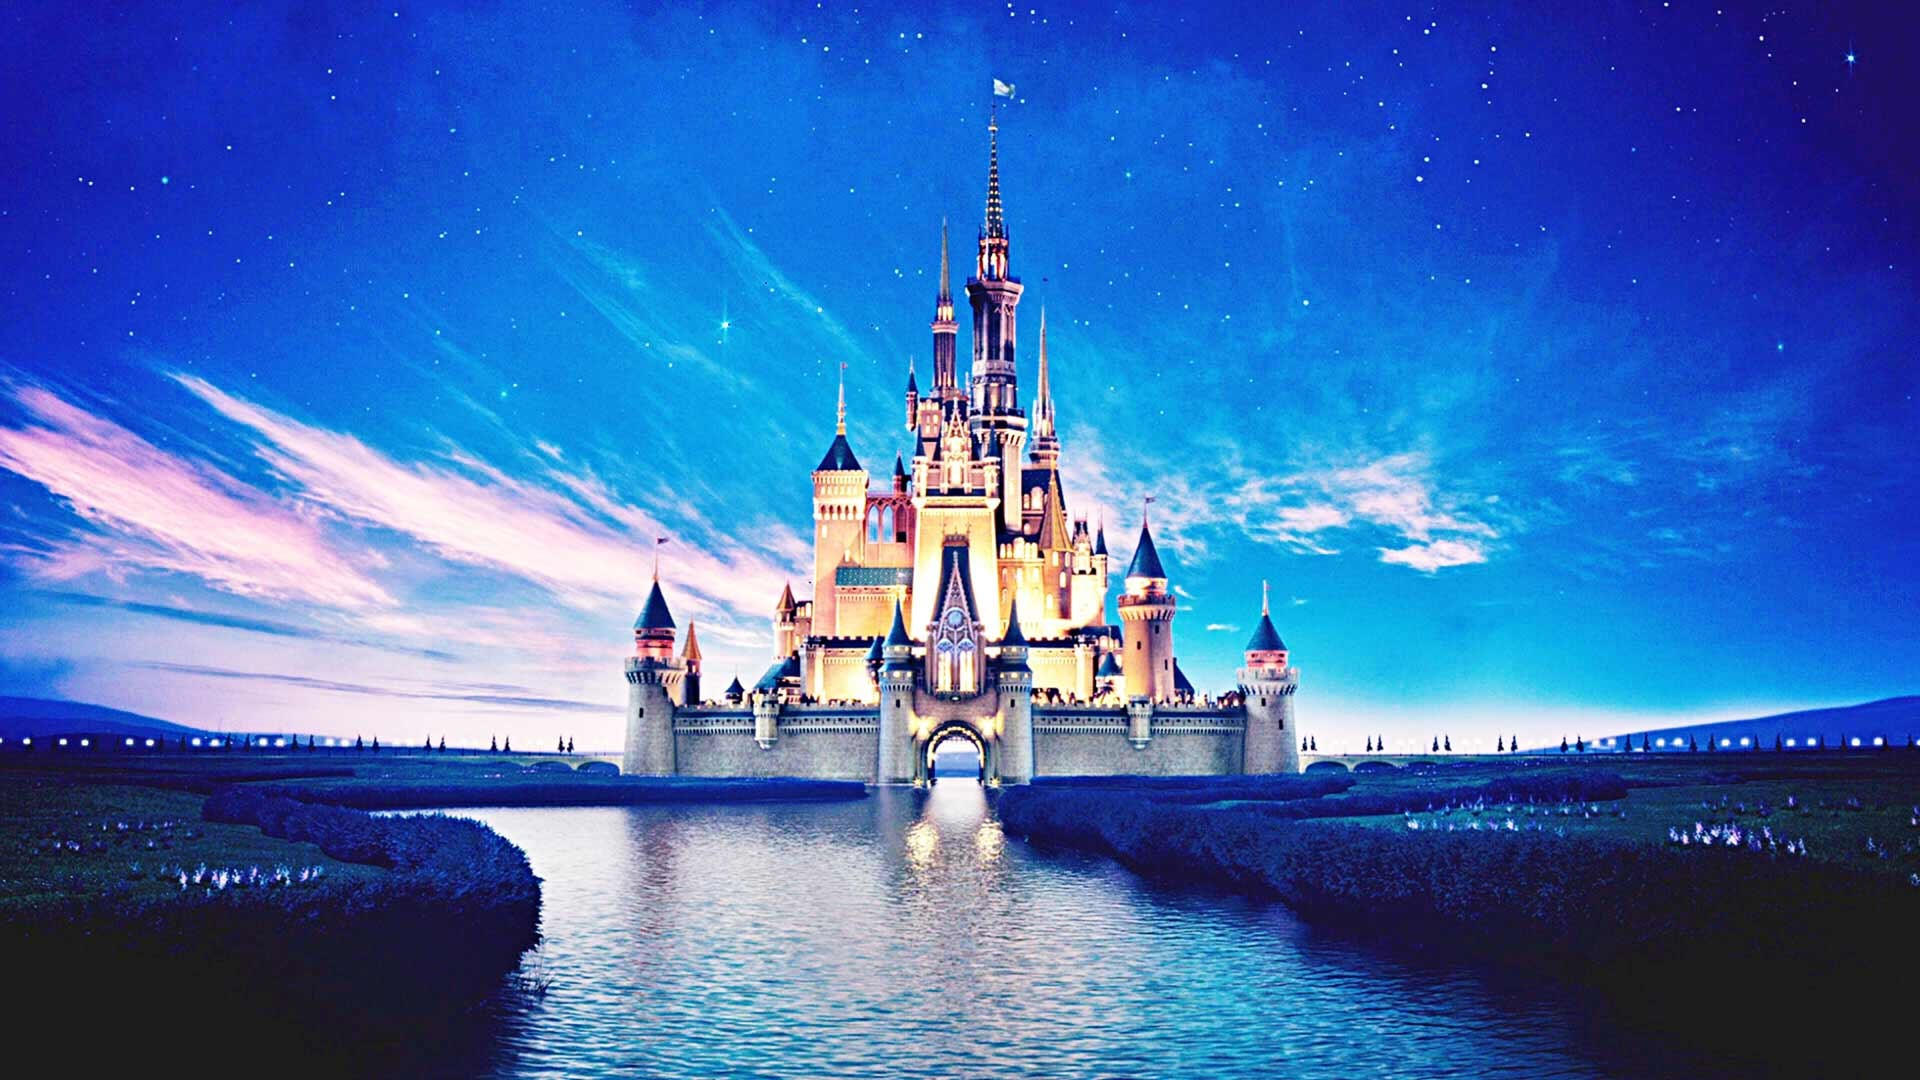 Disney Hd Wallpaper 74 Images